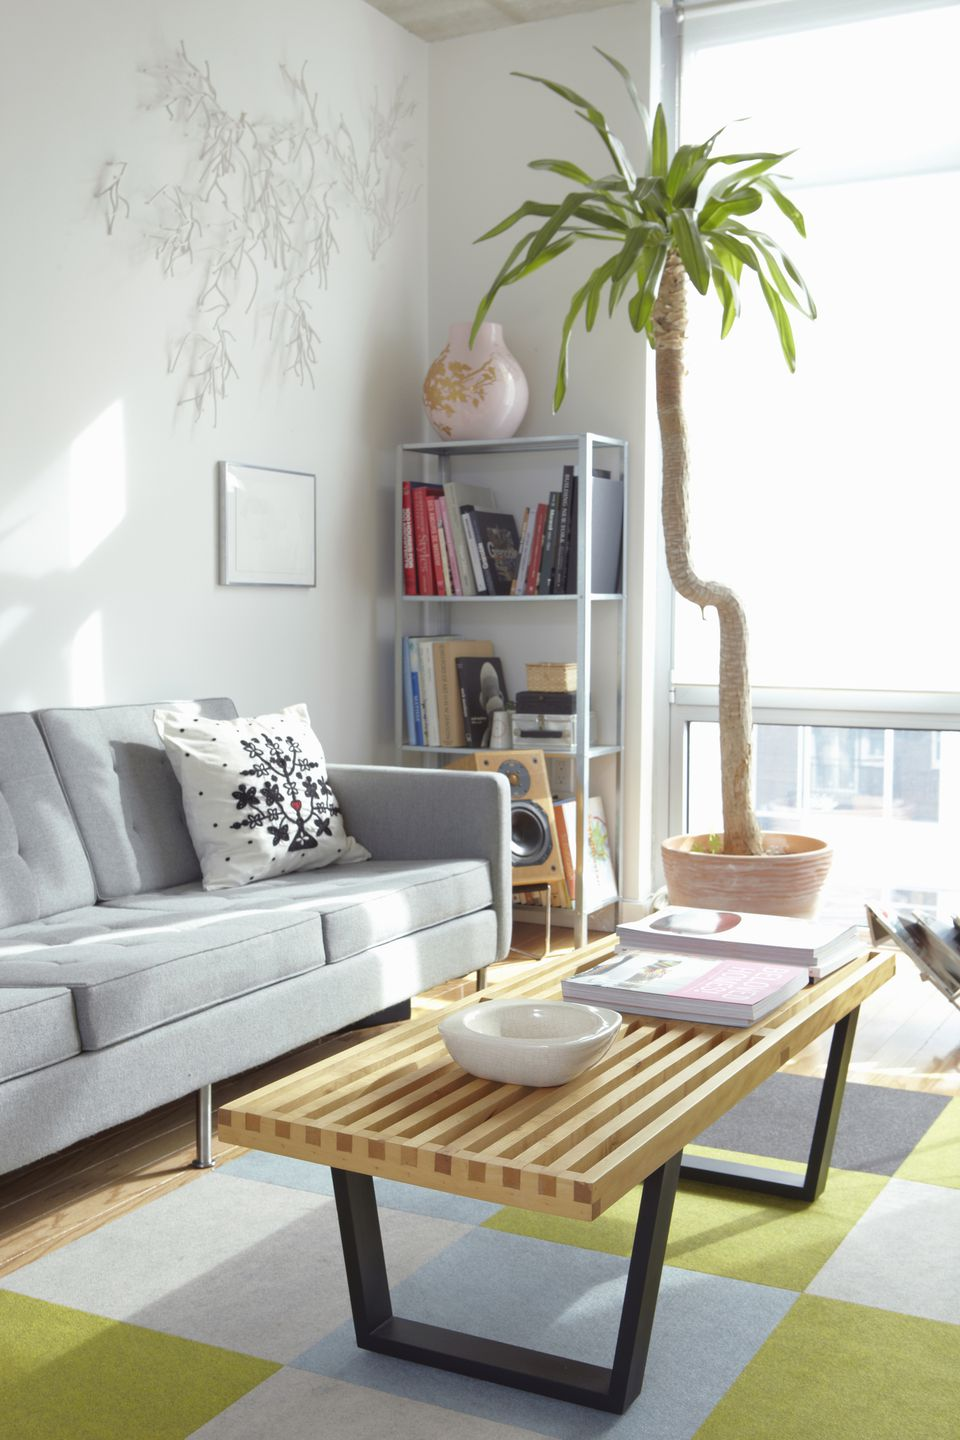 apartment furniture living room. Modern loft apartment Image Gallery of Small Living Rooms